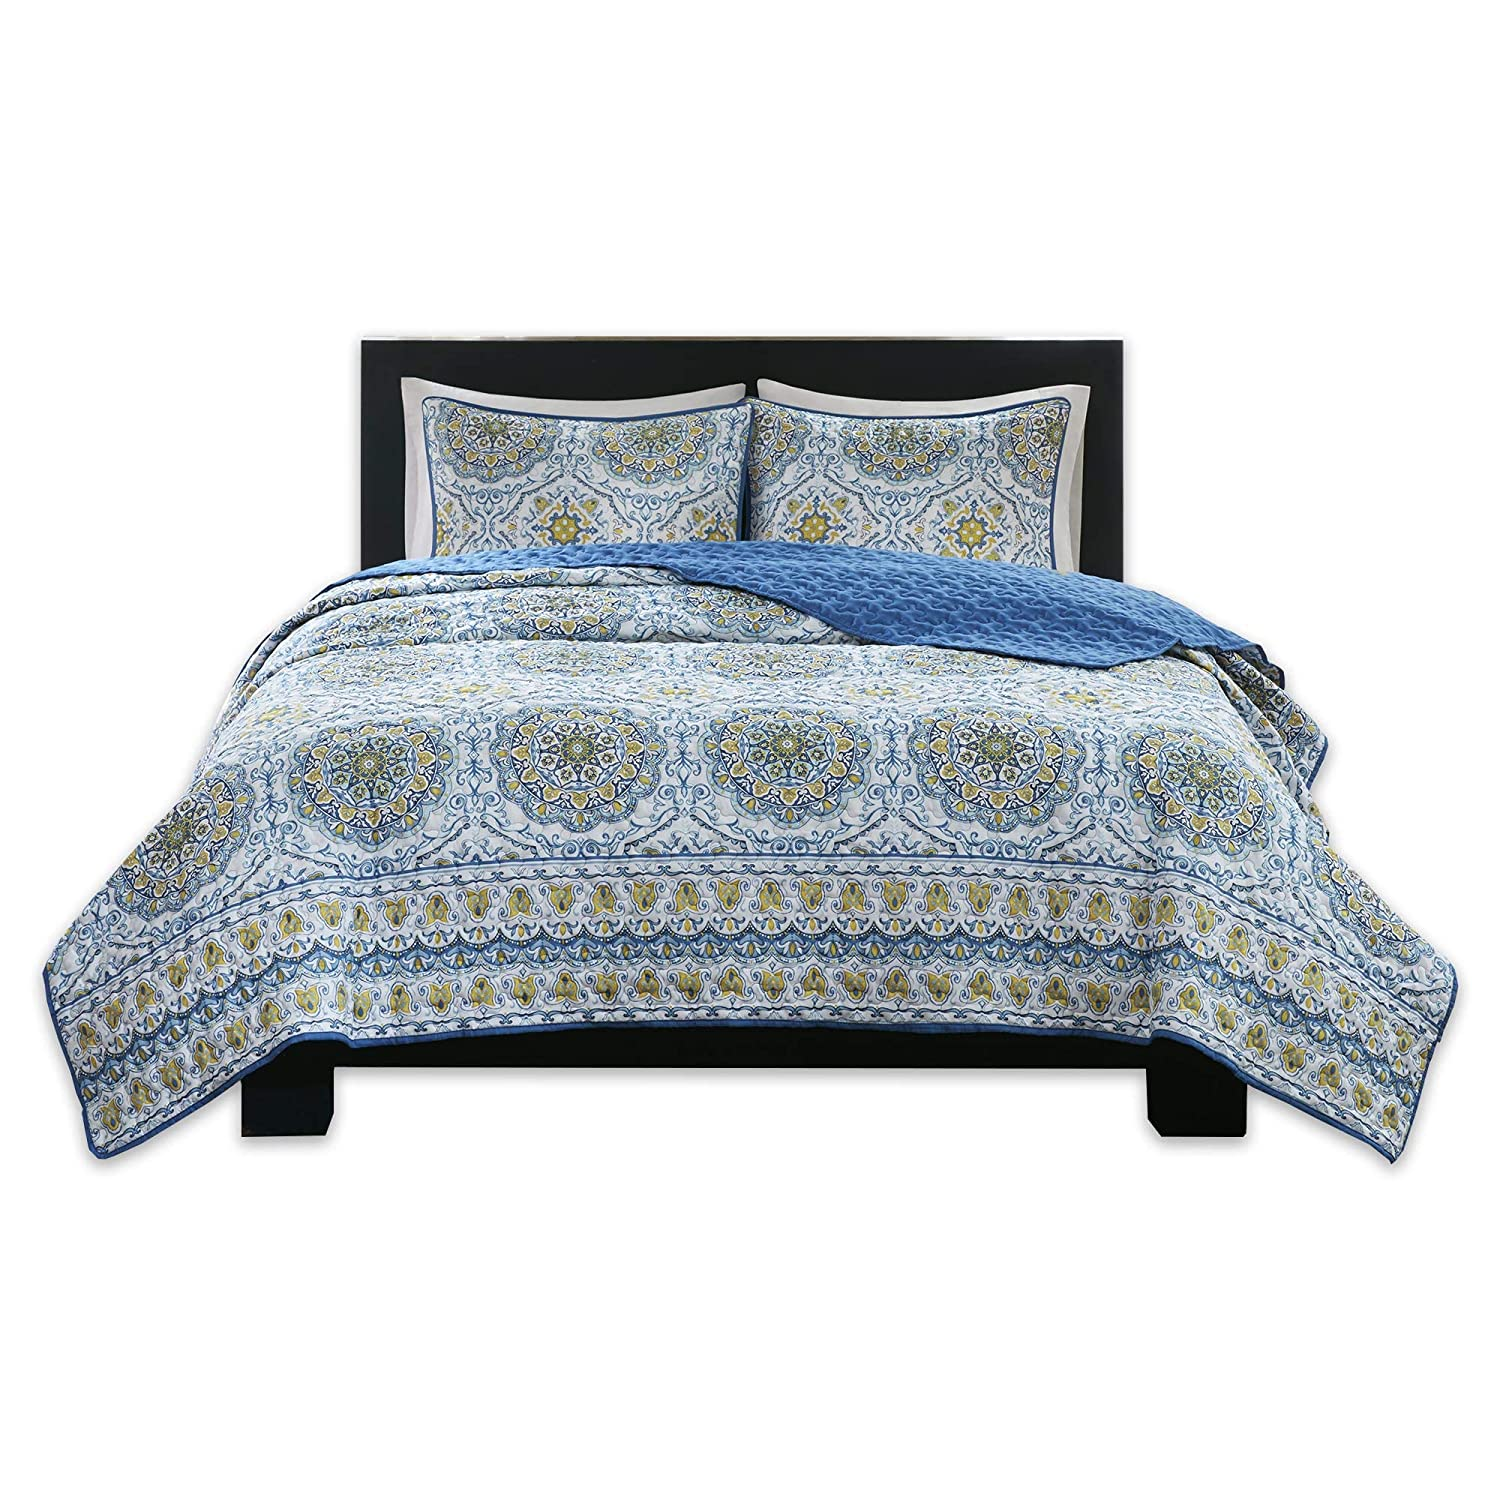 Home Essence Taya 3 Piece King Quilt Set Reversible Solid Printed  Medallions Pattern Light-Weight Rustic Coverlet Soft Microfiber Bedding for  All